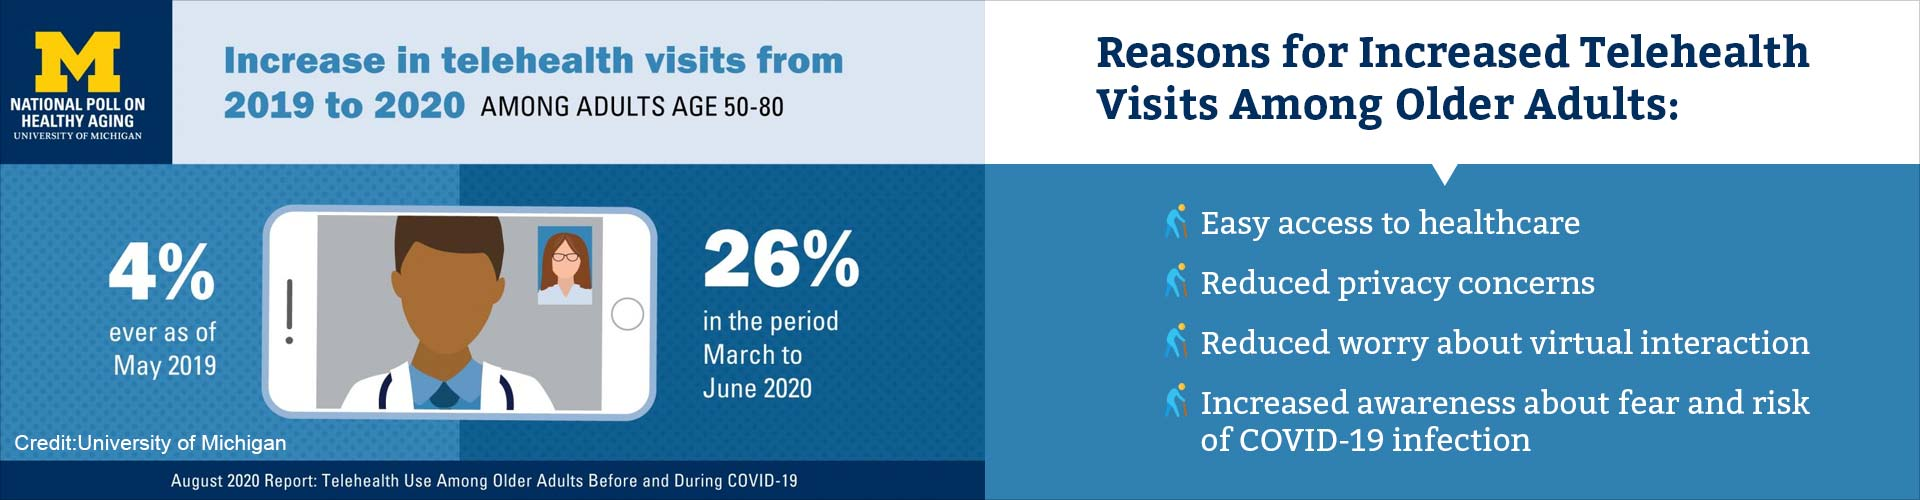 How Has COVID-19 Impacted Use of Telehealth Visits?